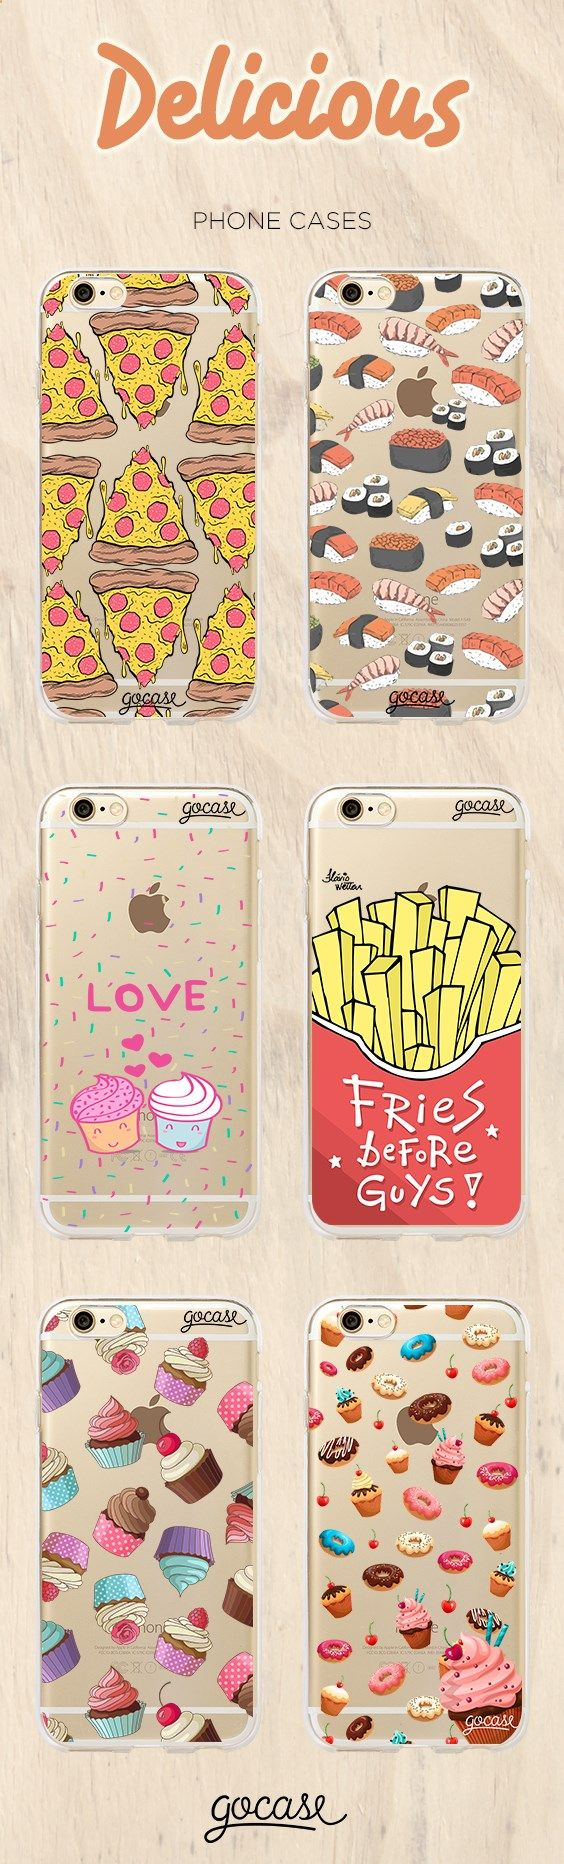 Phone Cases - ♕pinterest/ francesca Cell Phones & Accessories - Cell Phone, Cases & Covers - amzn.to/2iNpCNS